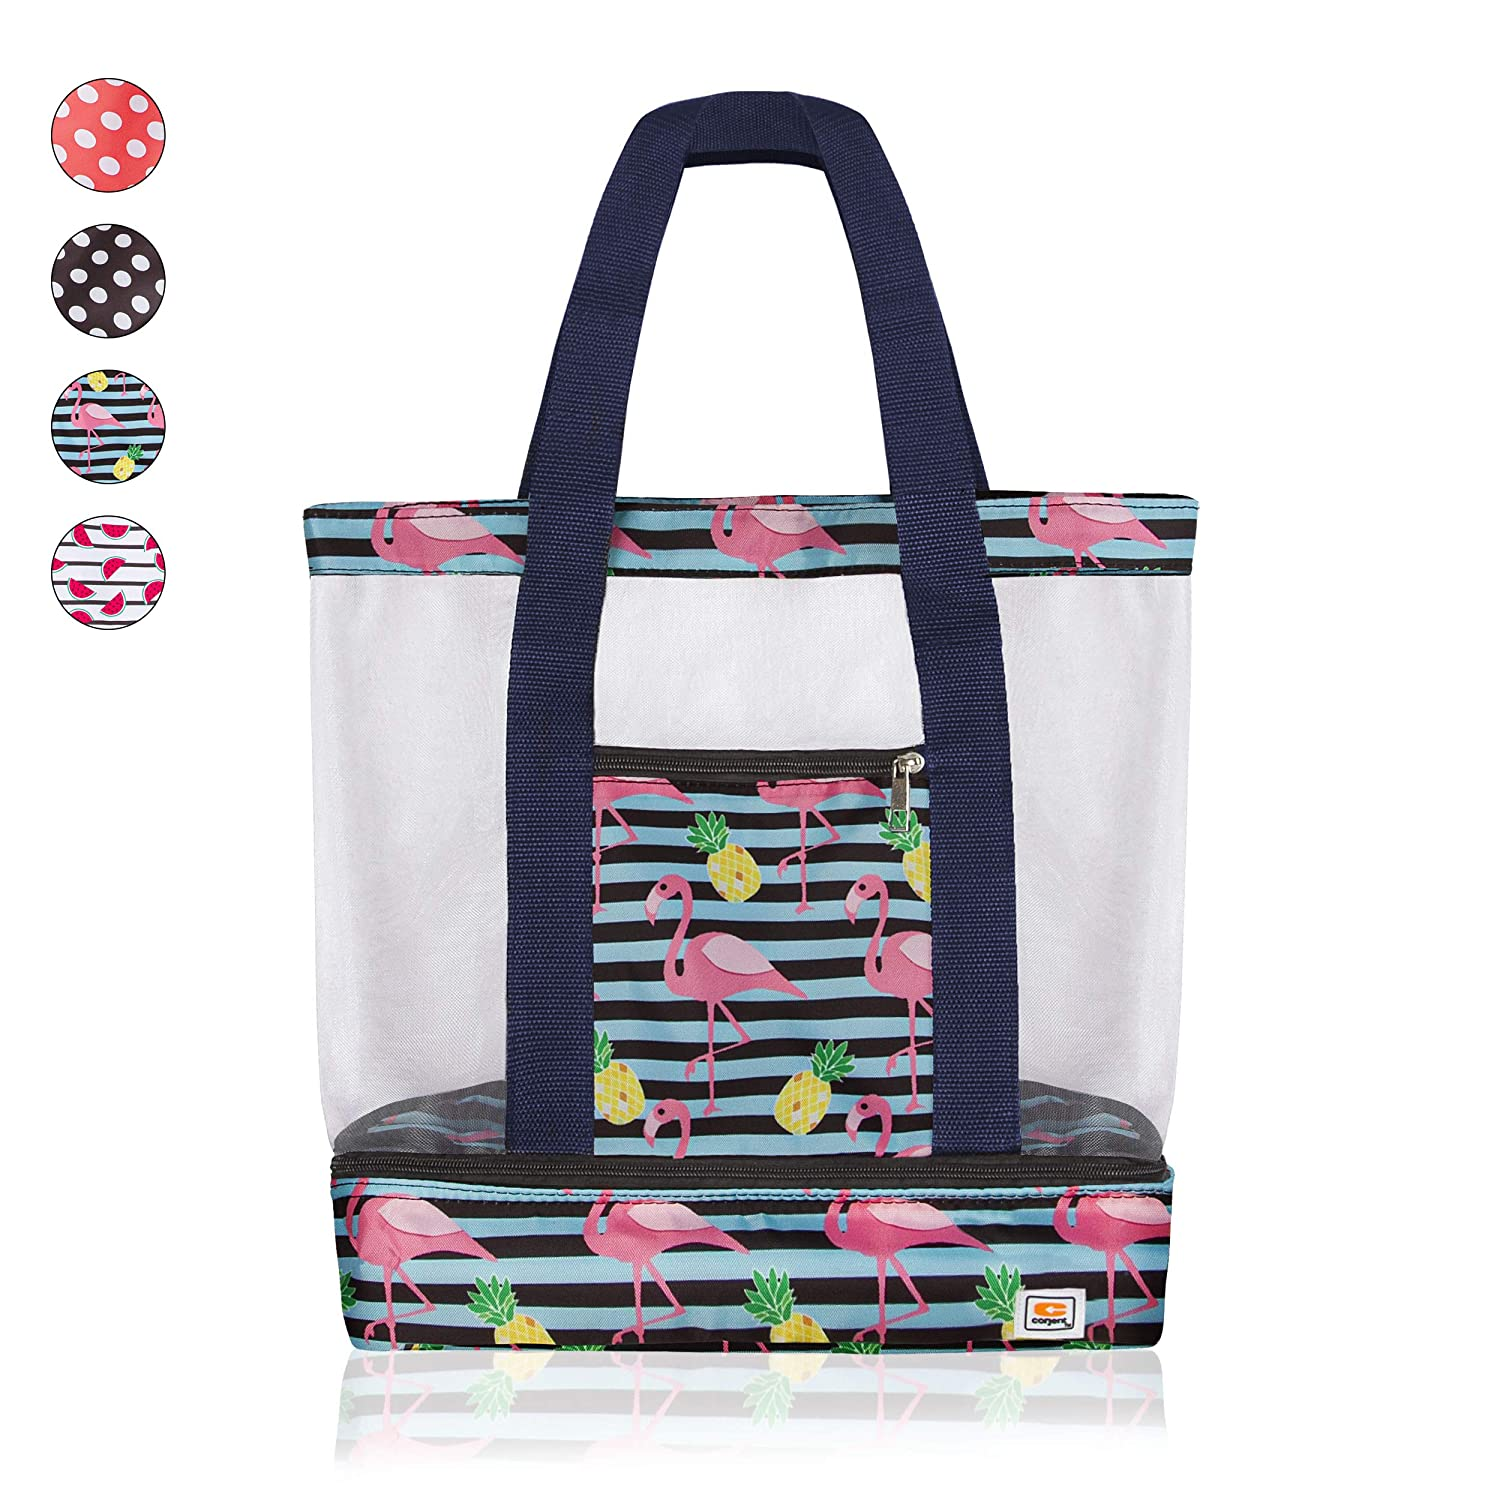 Beach Tote Bag with Mesh Top and Insulated Picnic Cooler Compartment Pineapple//Flamingo